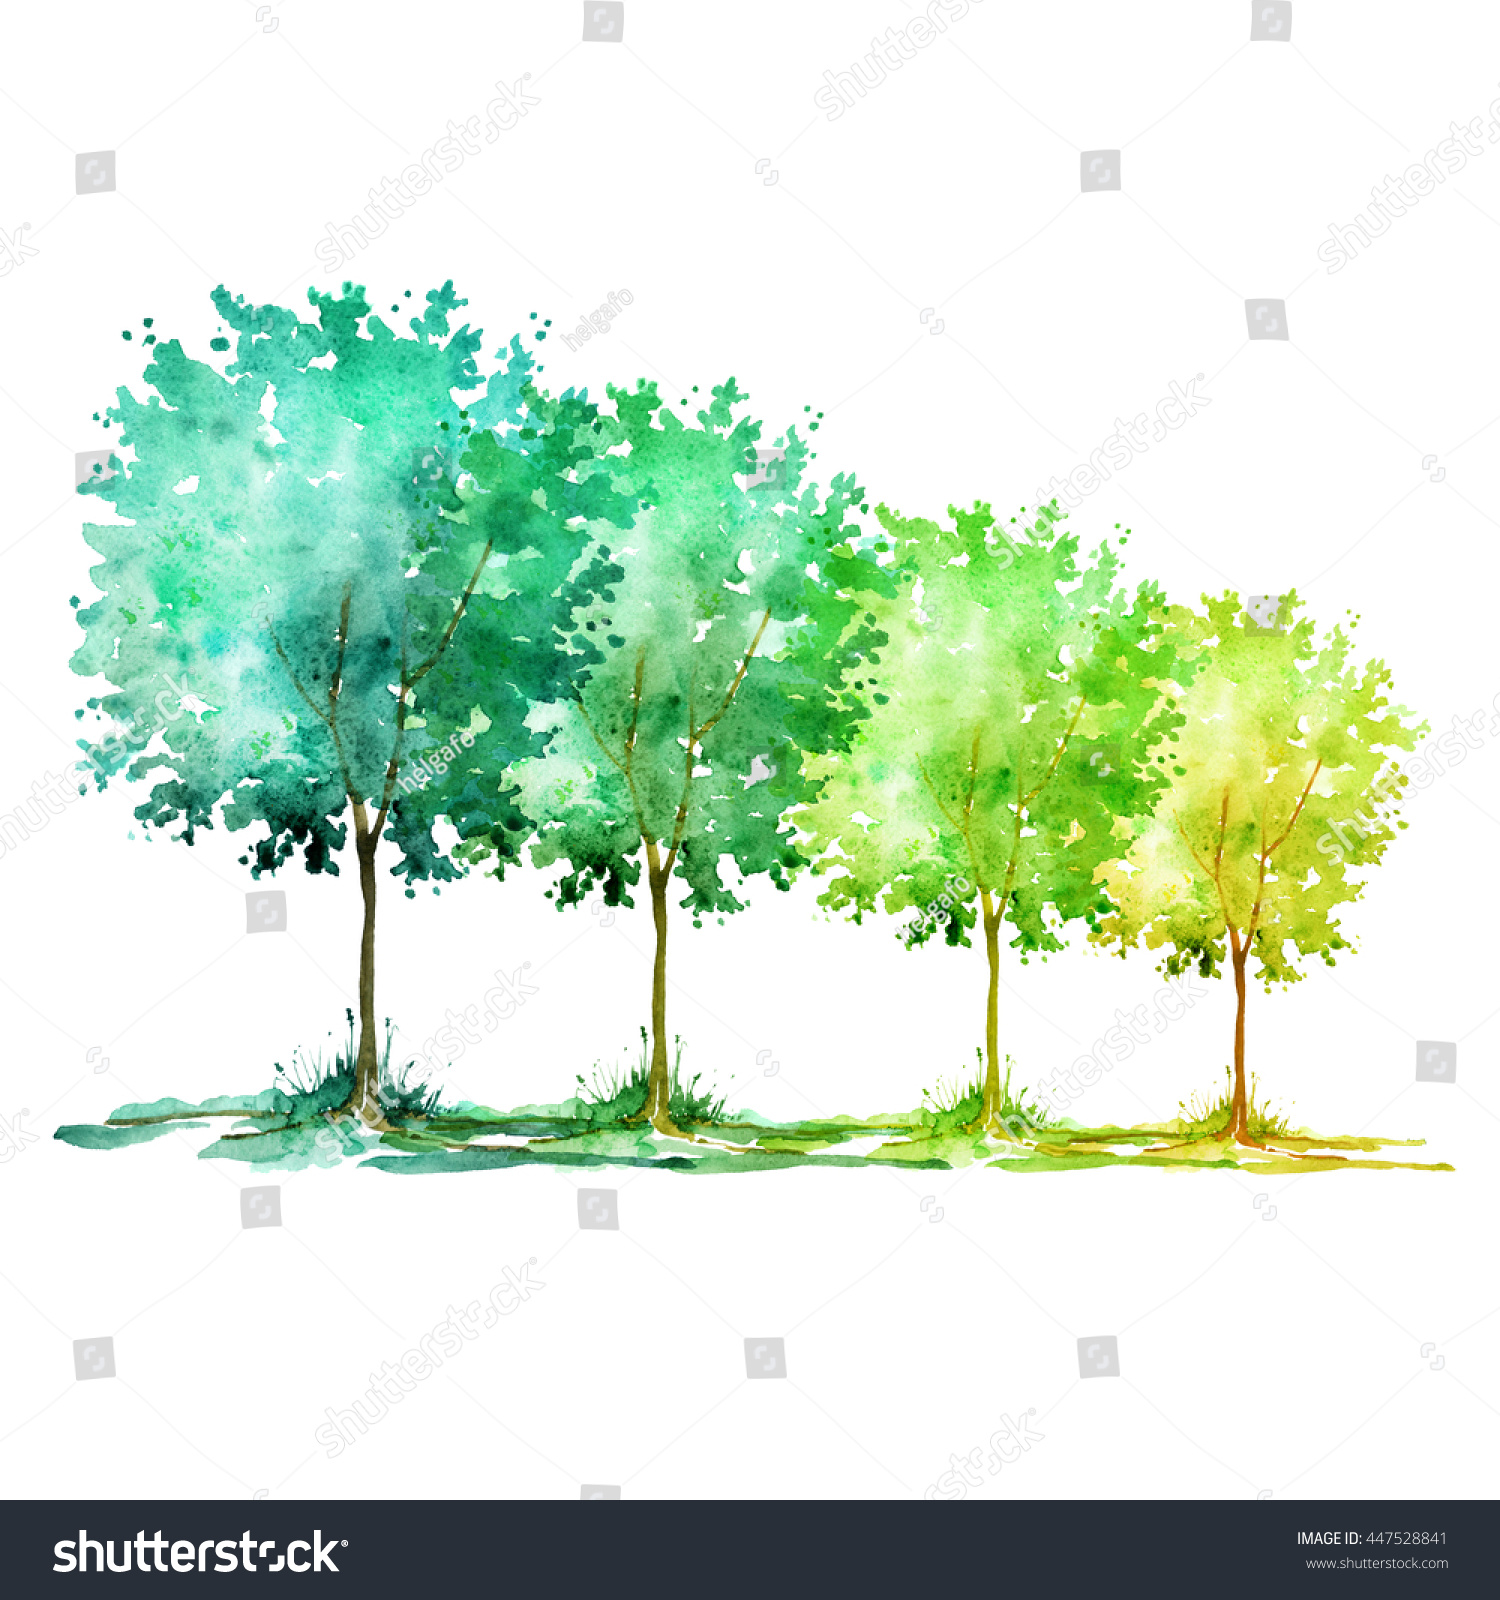 Watercolor Group Trees On White Background Stock Illustration ...